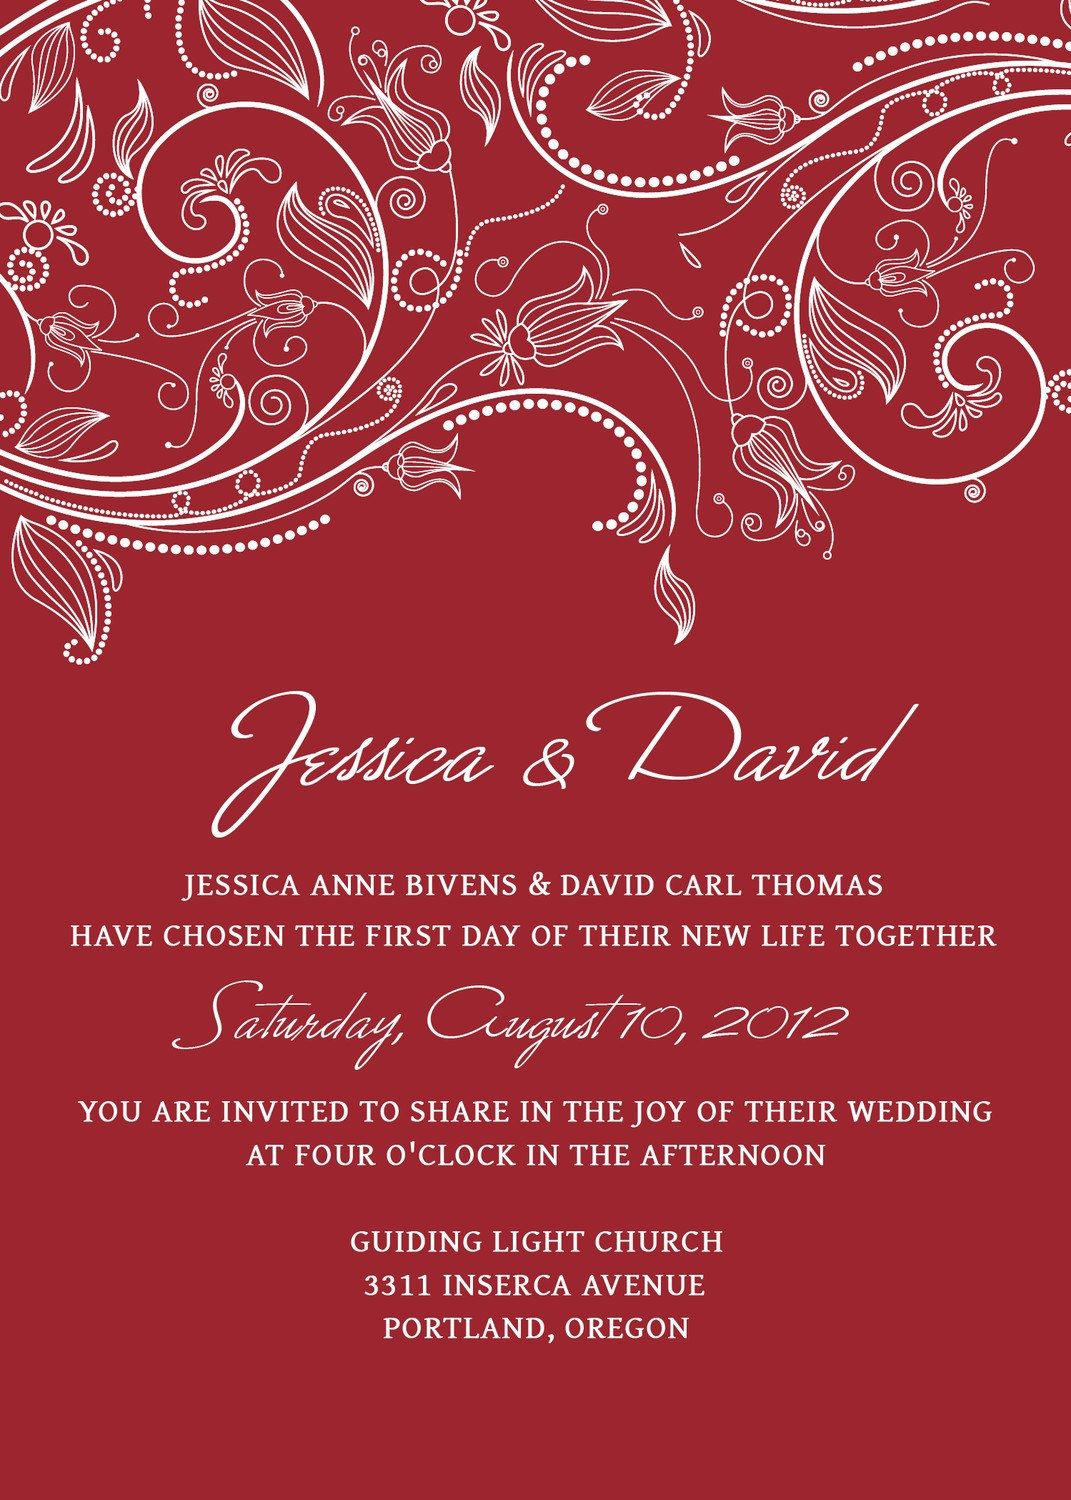 Wedding Invitation Templates PSD Photoshop - Red Crimson White